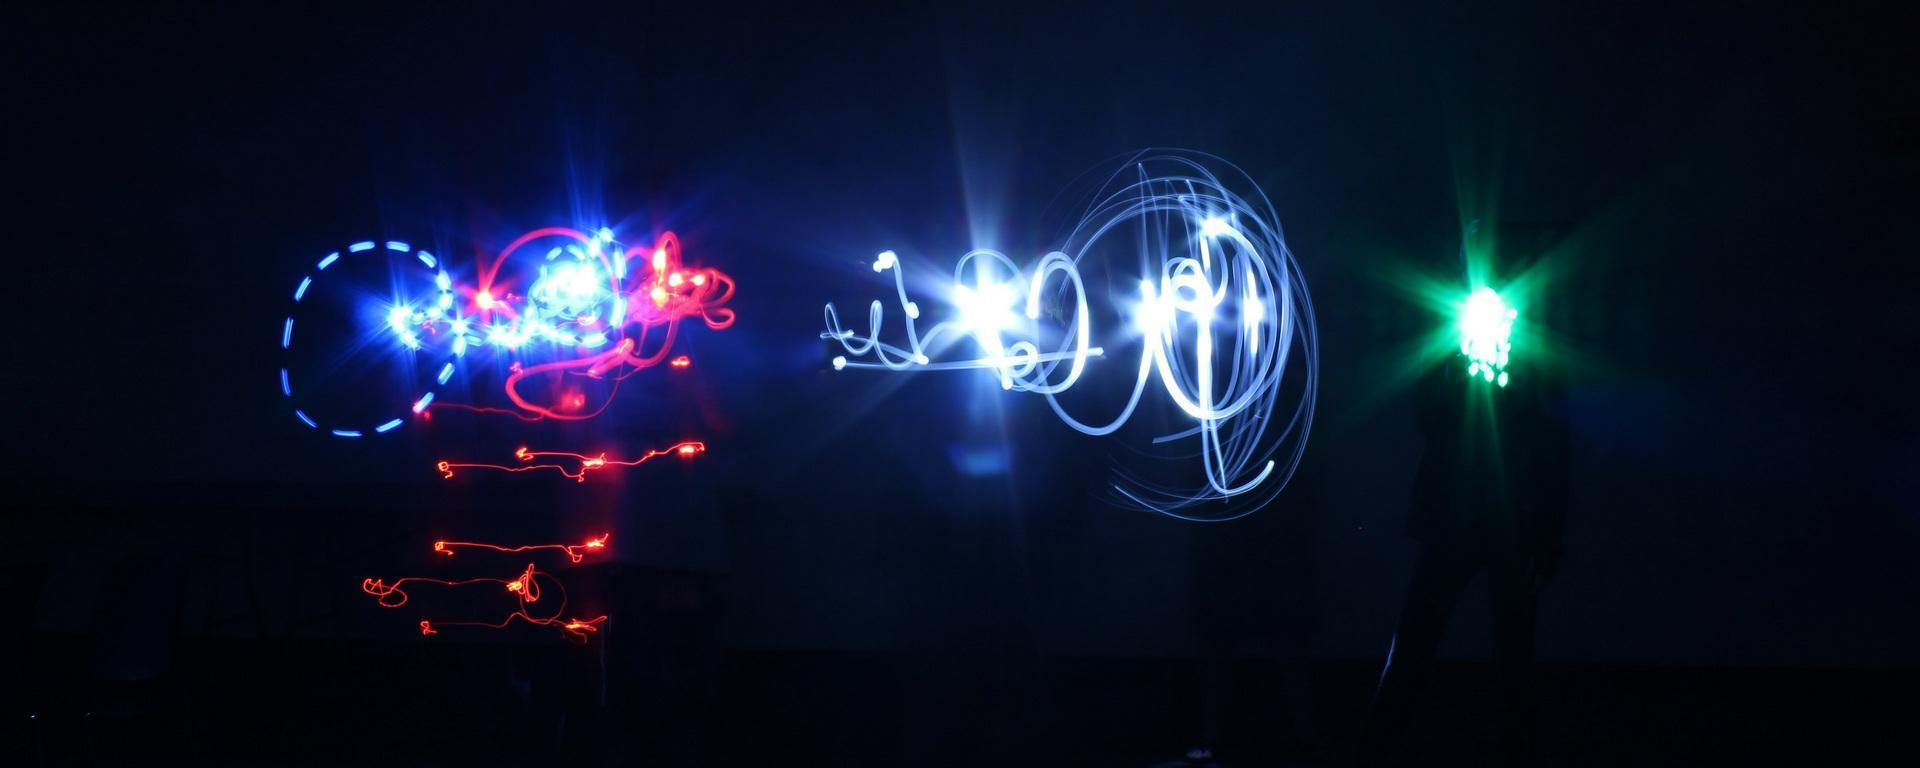 light art created by teens in Hobe Sound